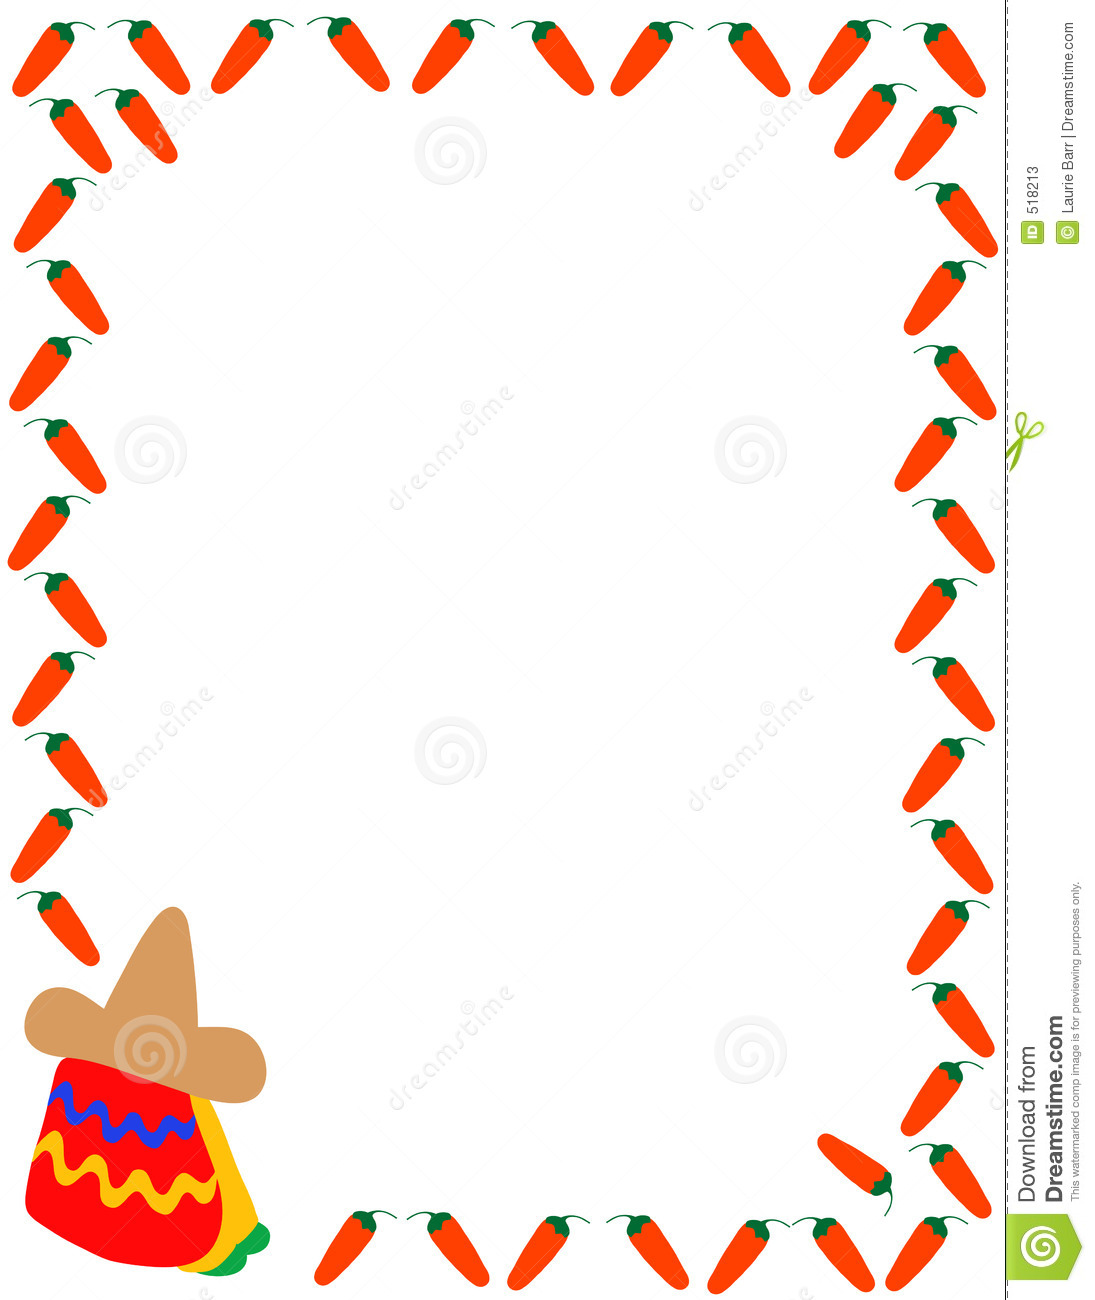 Wild West clipart mexican border Clip Clipart Free Mexican Panda